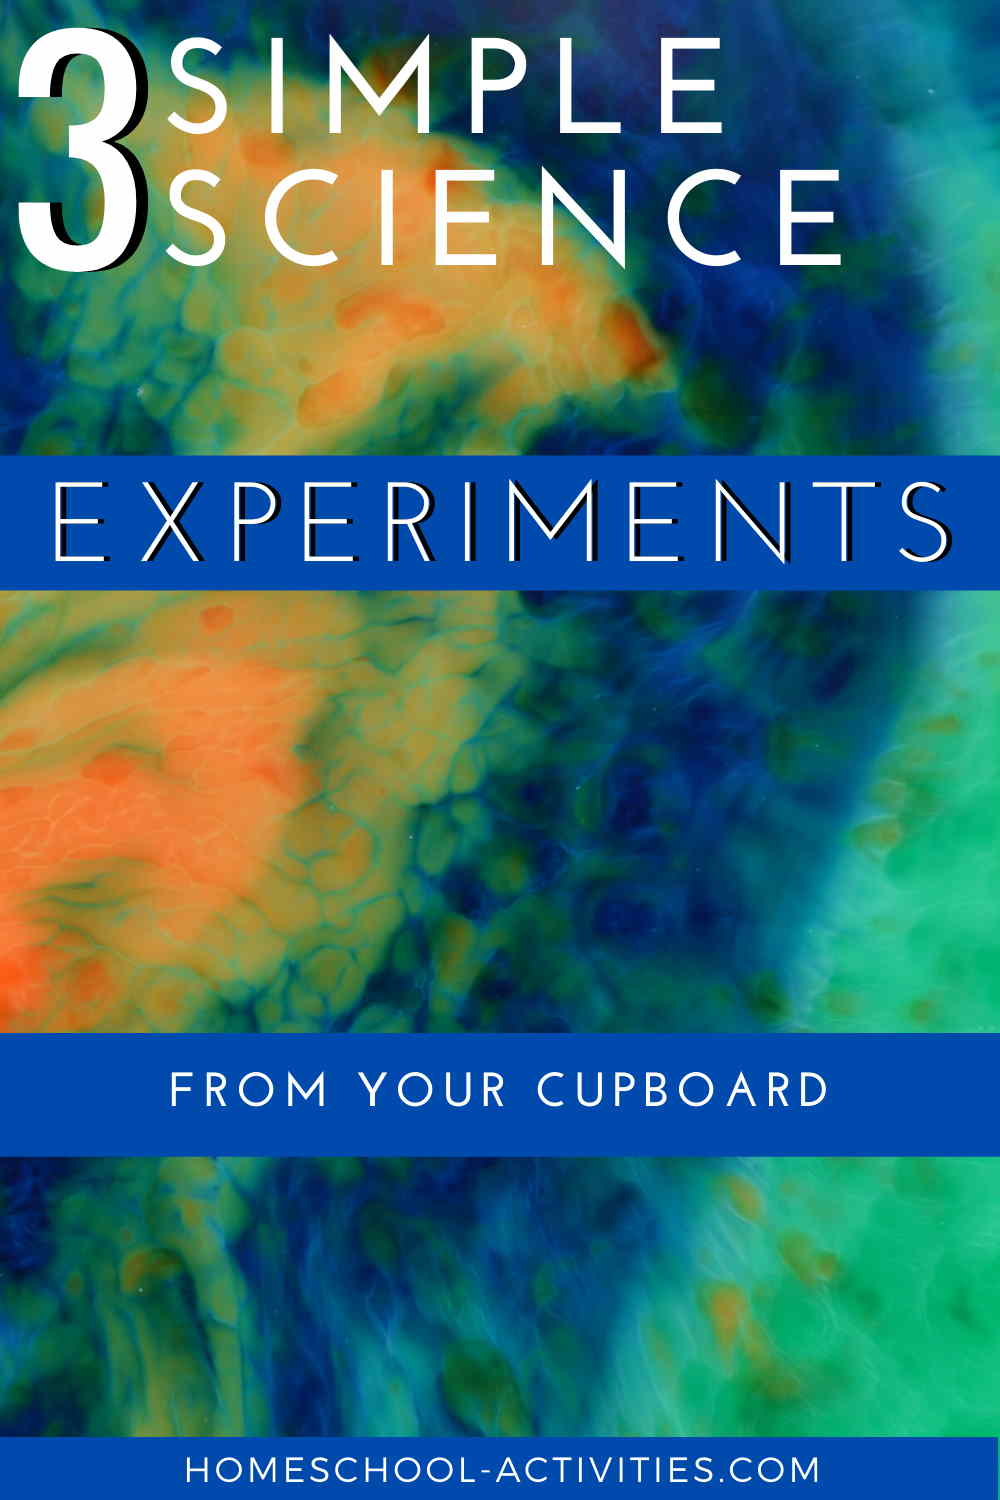 Three simple science experiments